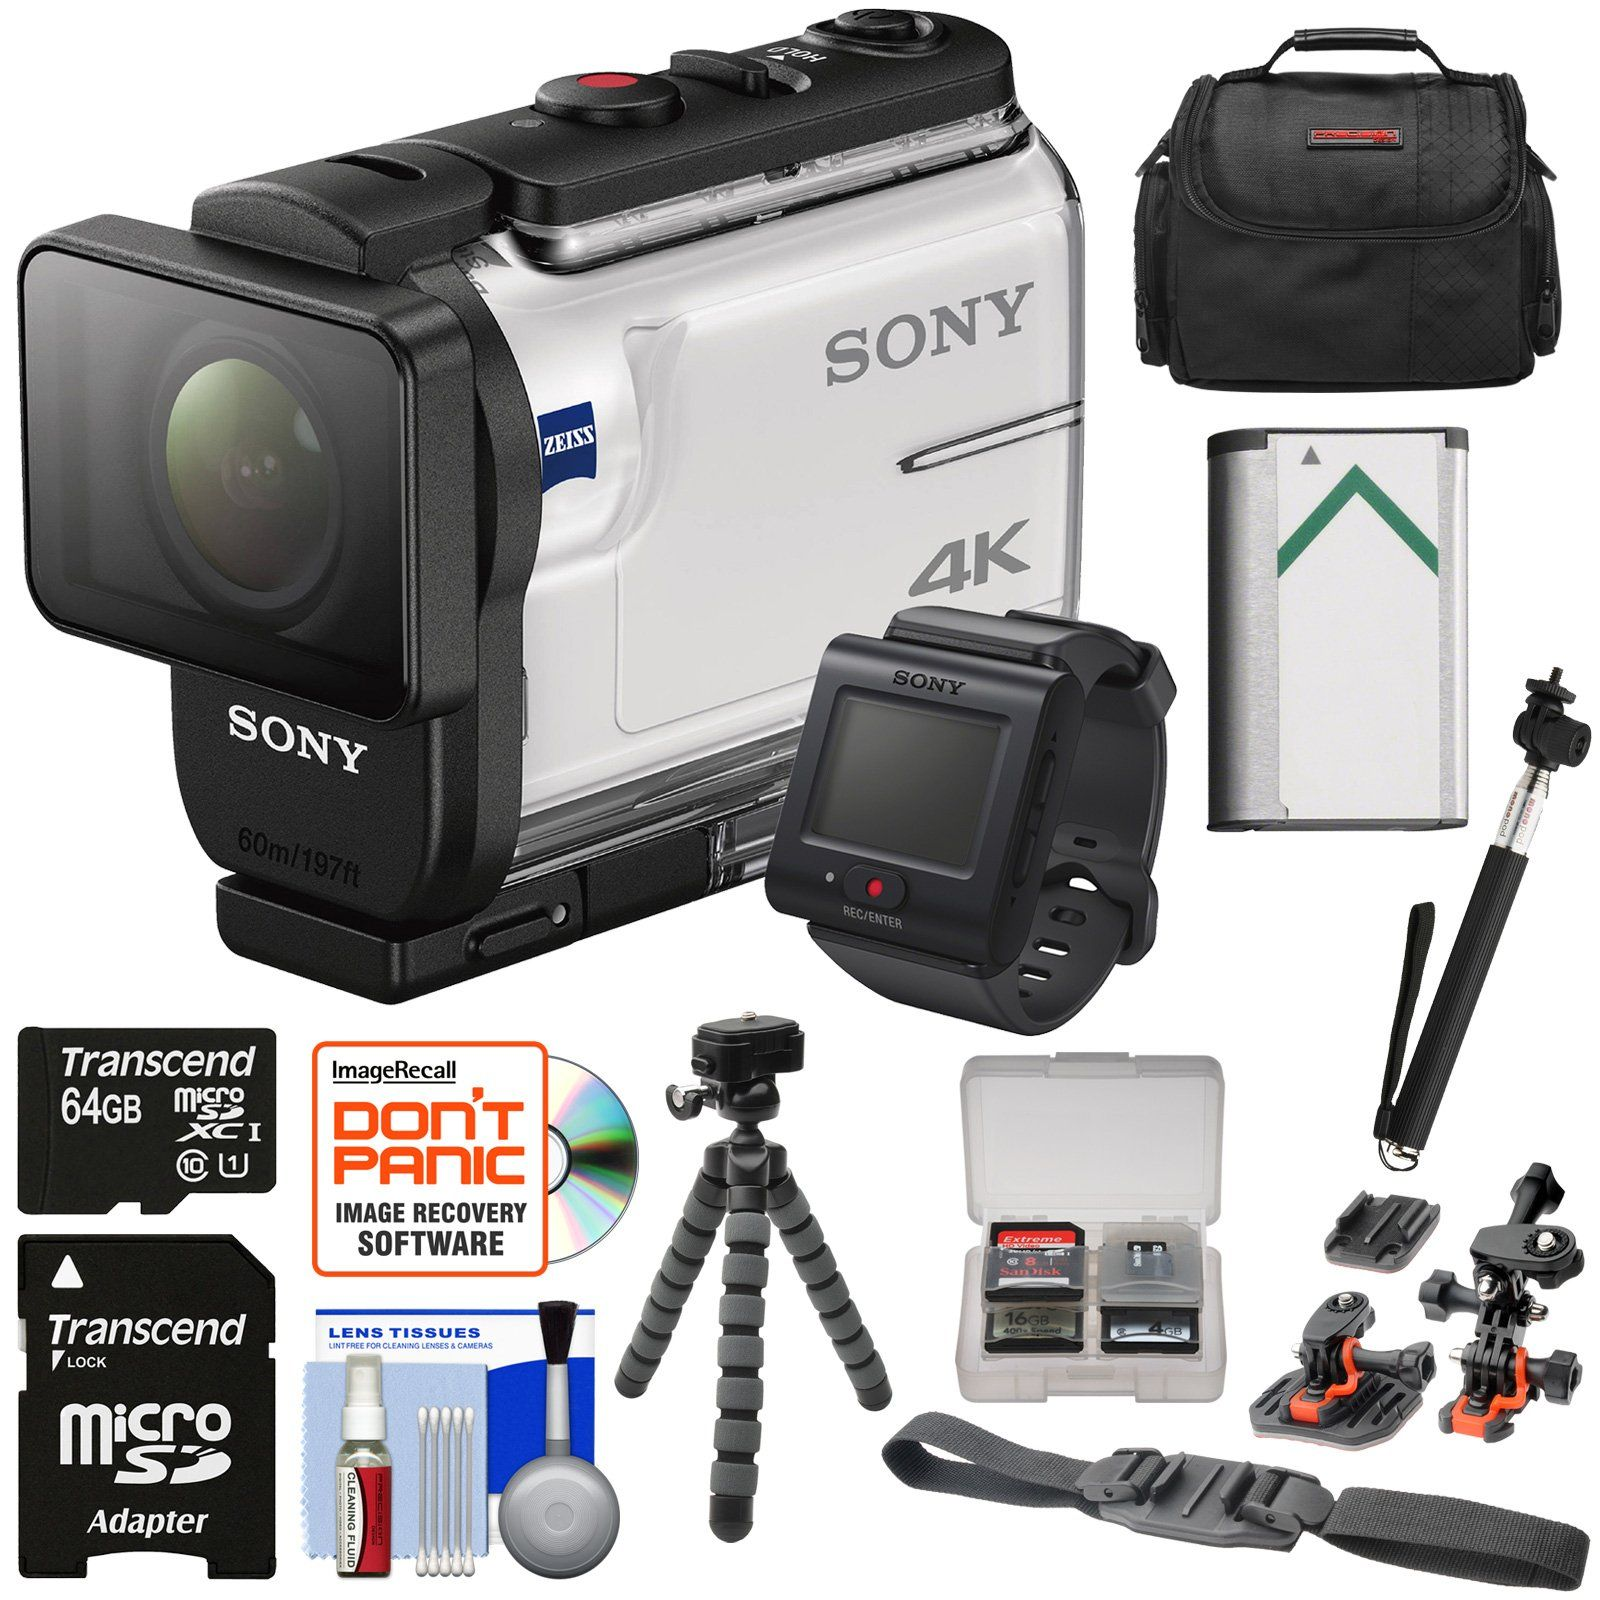 Sony Action Cam FDRX3000R WiFi GPS 4K HD Video Camera Camcorder